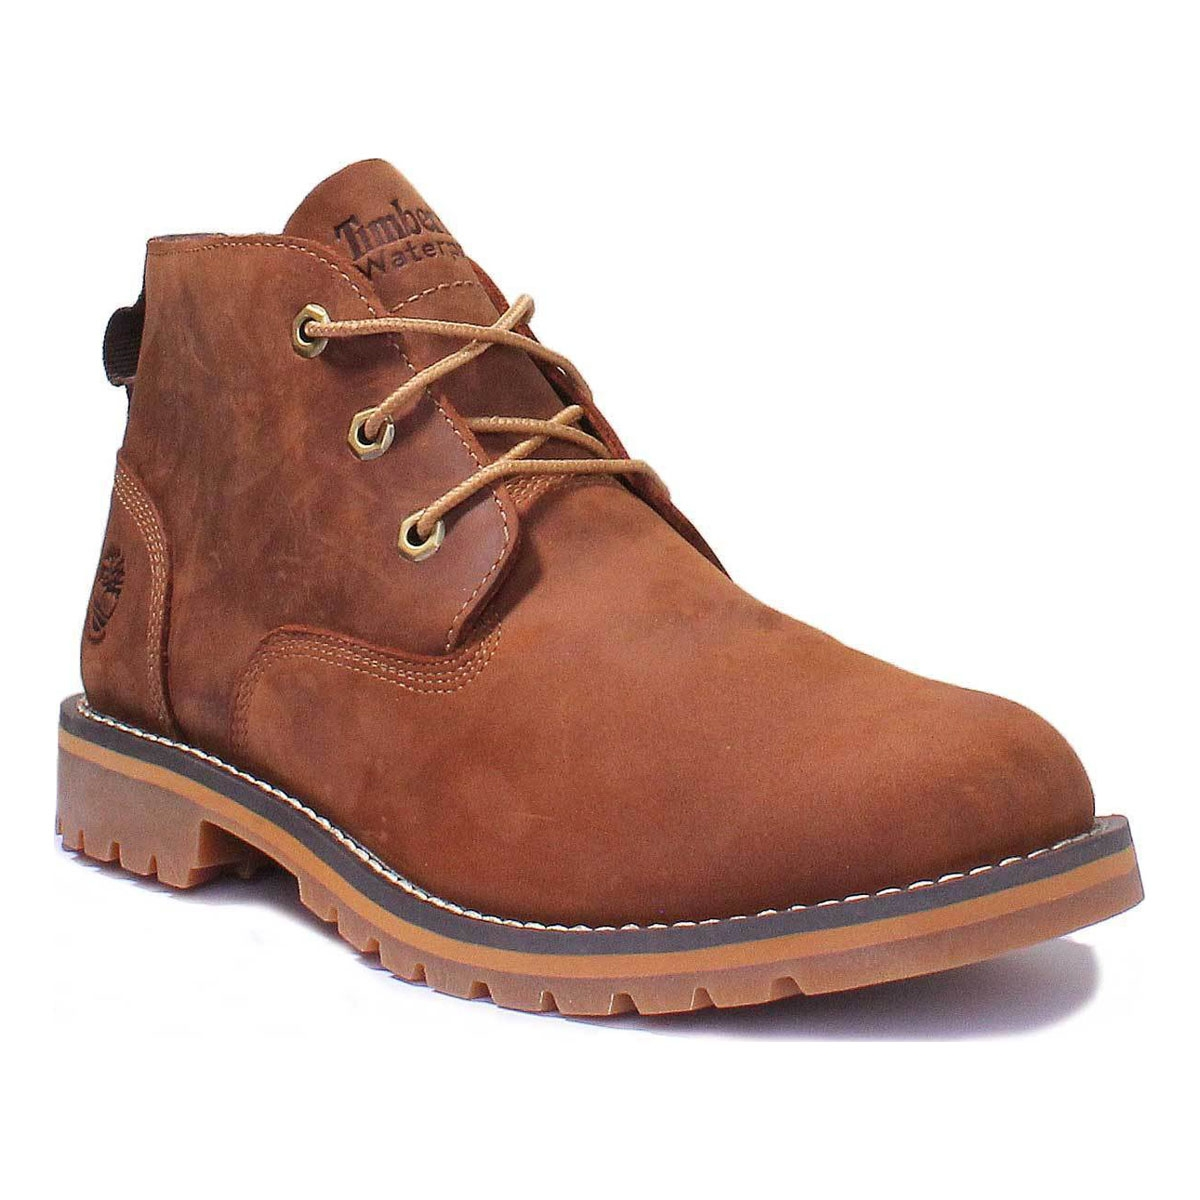 64dac4a0730 Timberland Earthkeepers Larchmont WP Waterproof Chukka Boots (Men's) -  Glazed Ginger